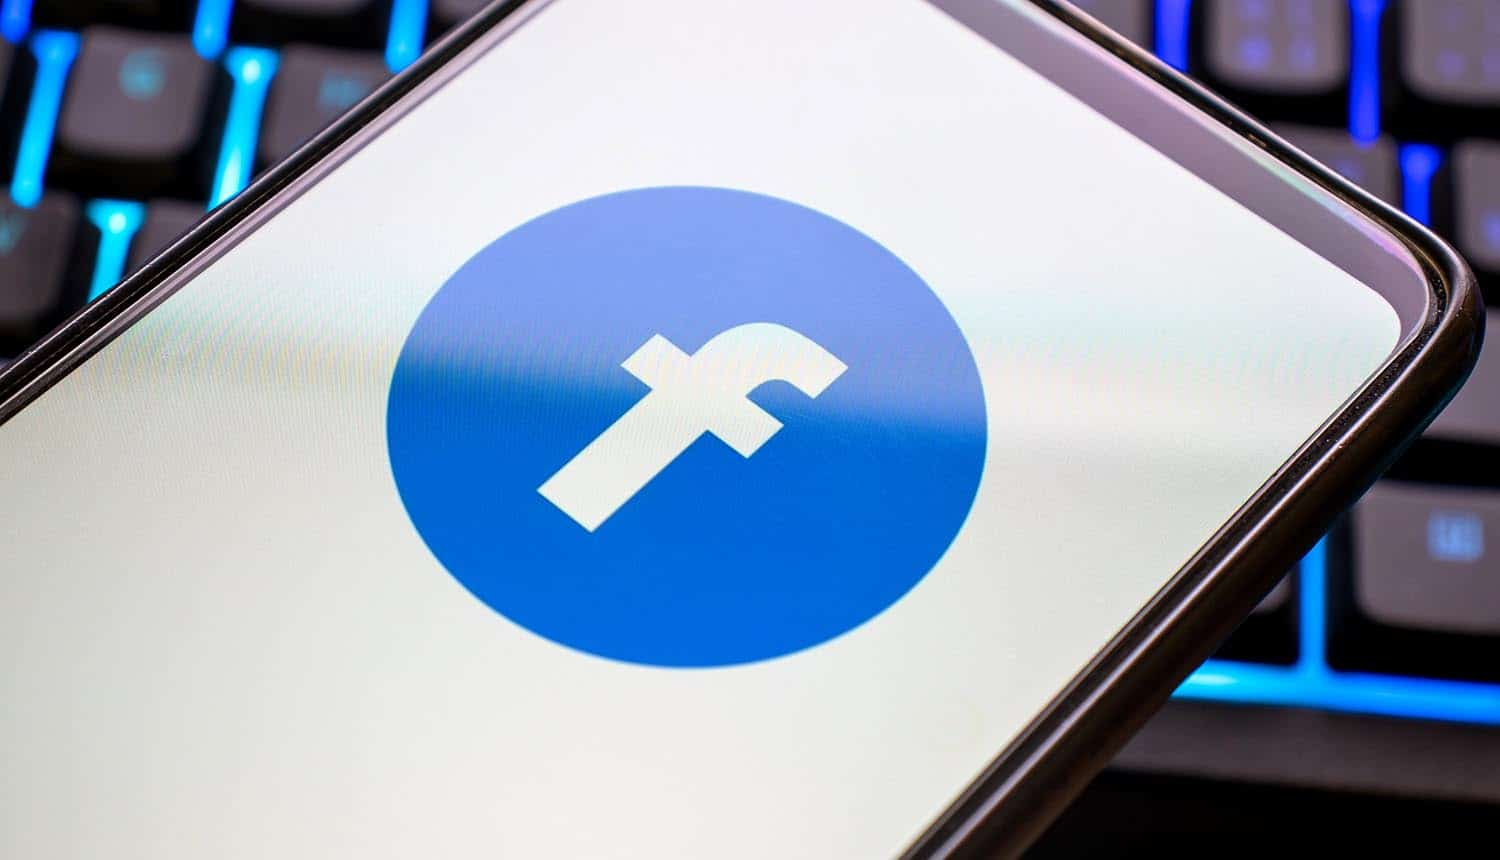 Mobile phone with blue facebook logo on display showing data protection commissioner directive to shut down Facebook Pages